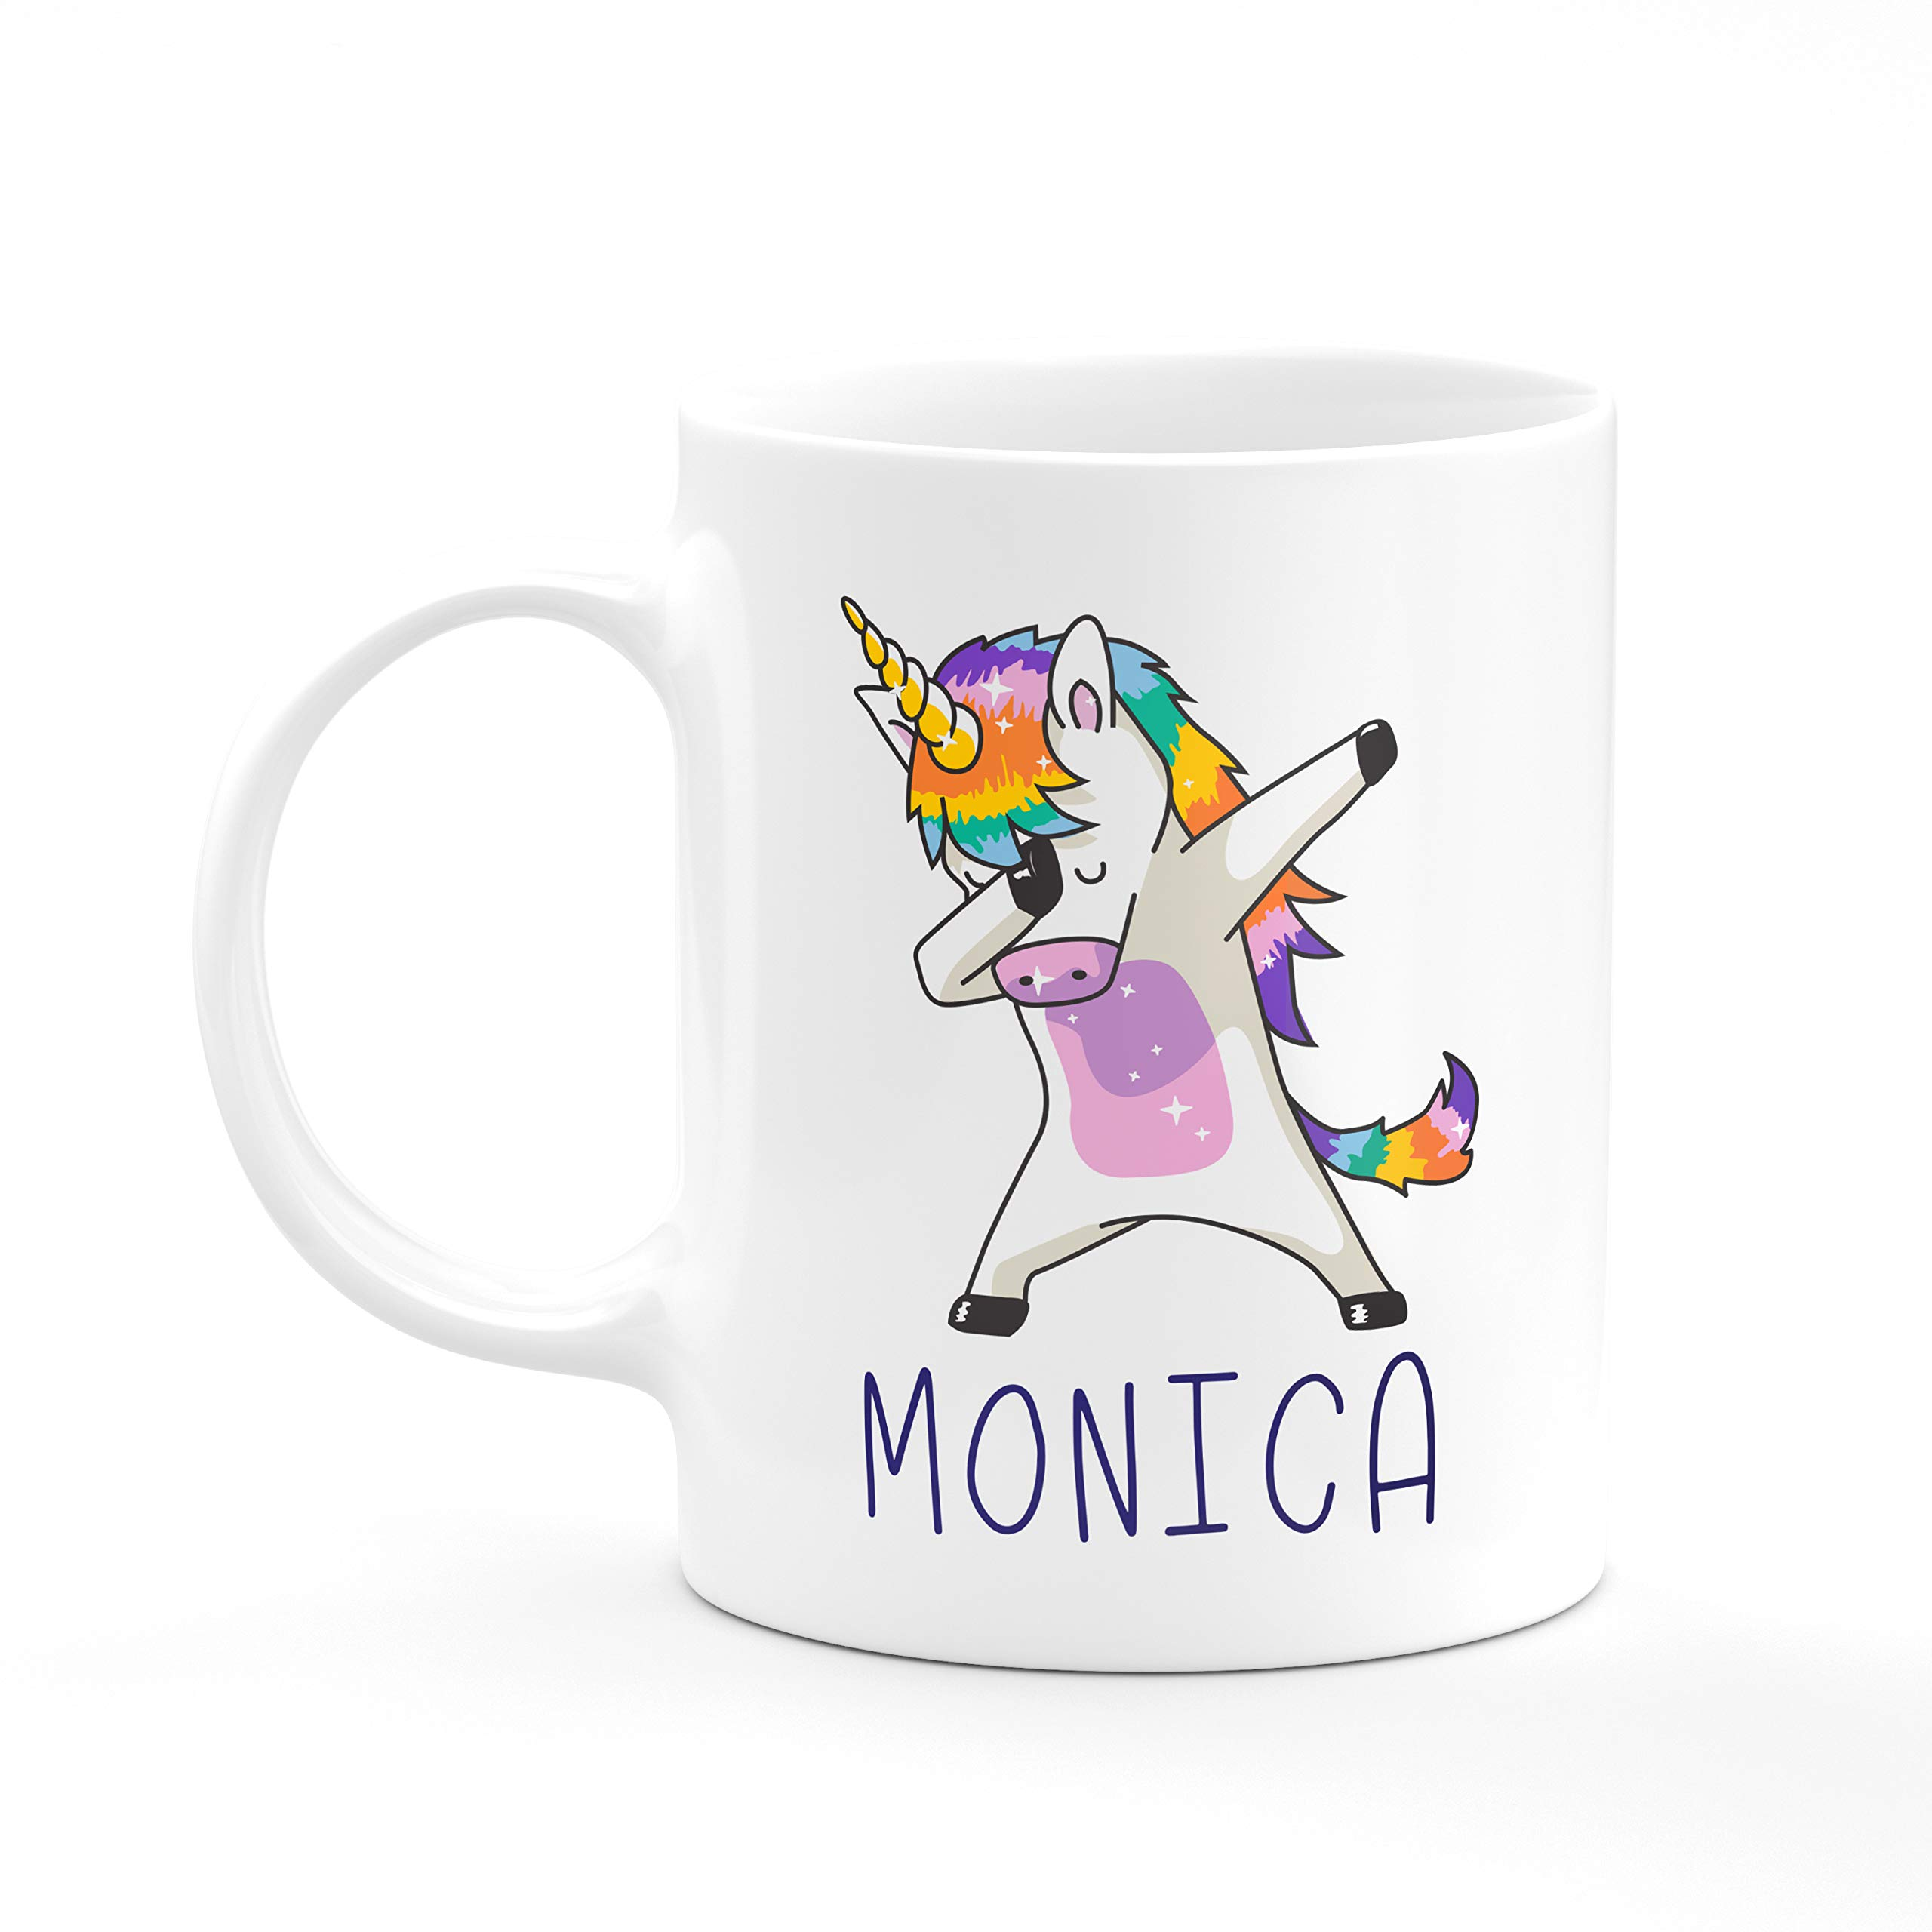 Dabbing Unicorn PRIDE Personalized Coffee Mugs with Name FREE CUSTOMIZATION-Wedding Gifts, Anniversary Gifts, Party Favors - 3 Different Designs - D1